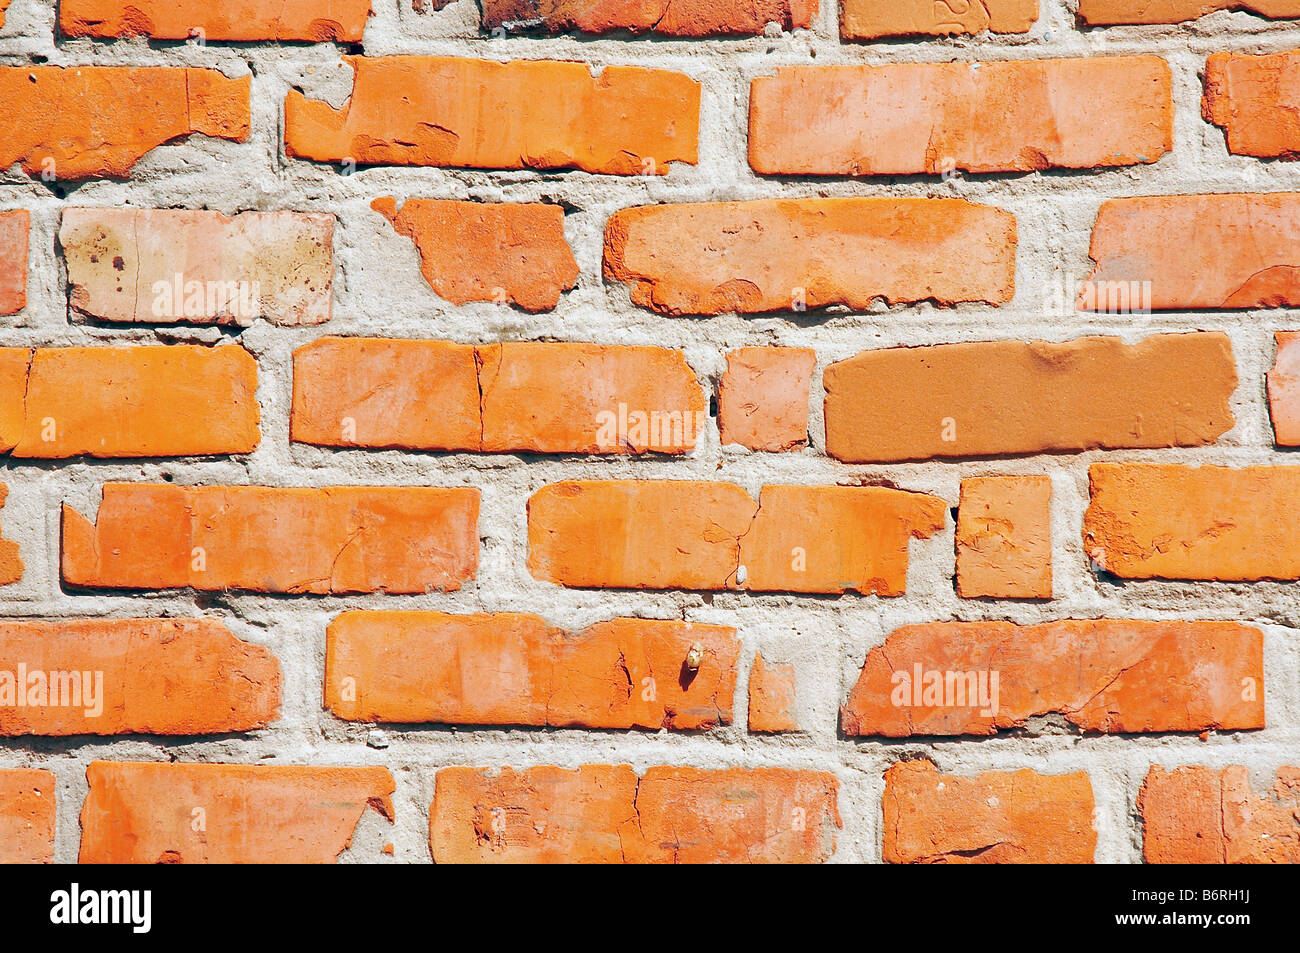 old bricks wall background - Stock Image